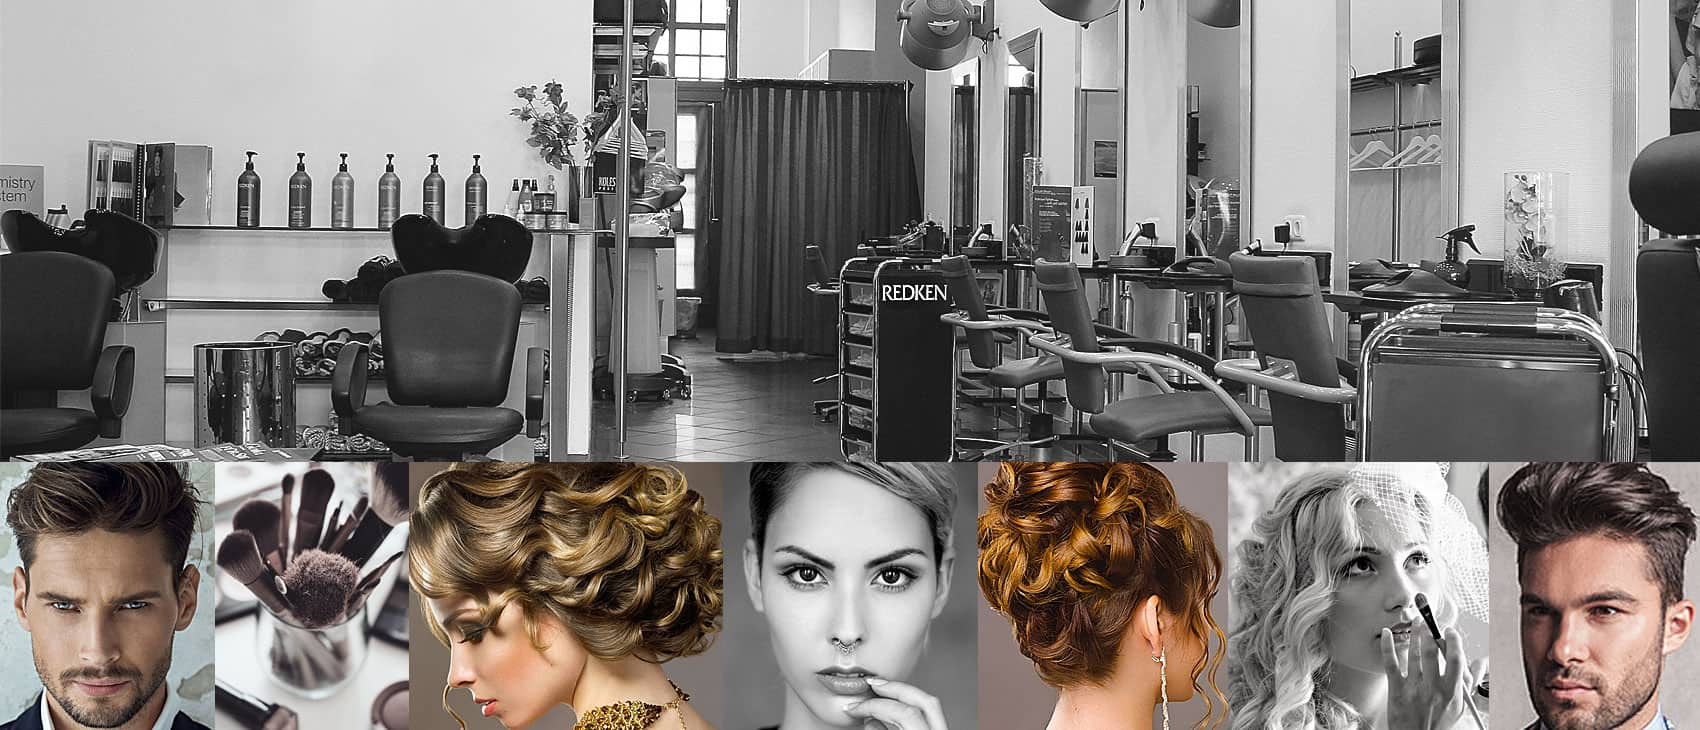 Arabische Frisuren Aktuell Friseur Make Up Artist Kosmetik In Mainz